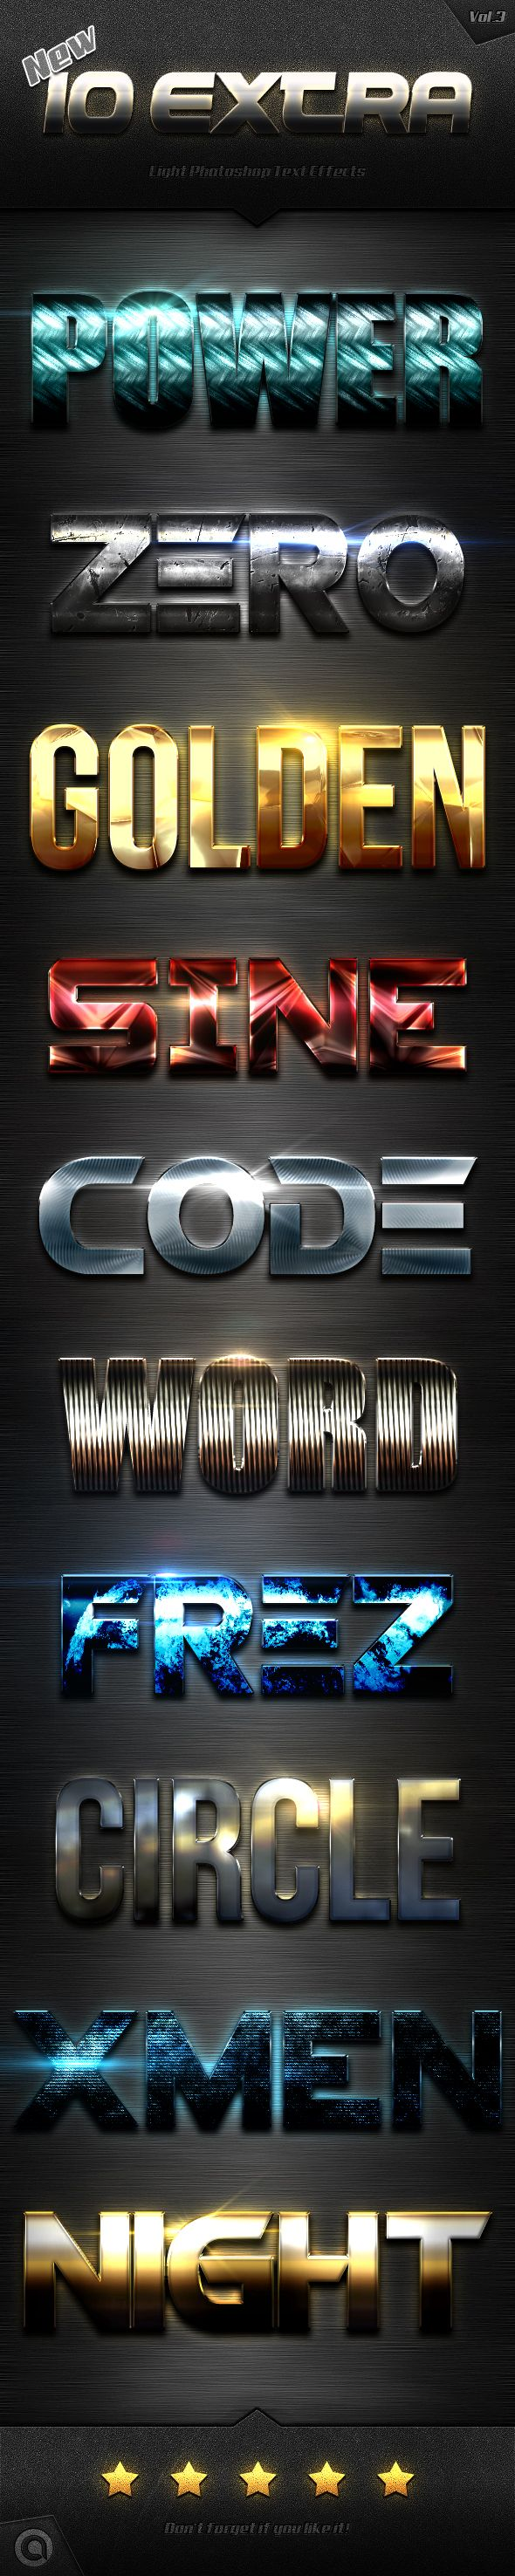 New 10 Extra Light Text Effects Vol.3 Styles Vol